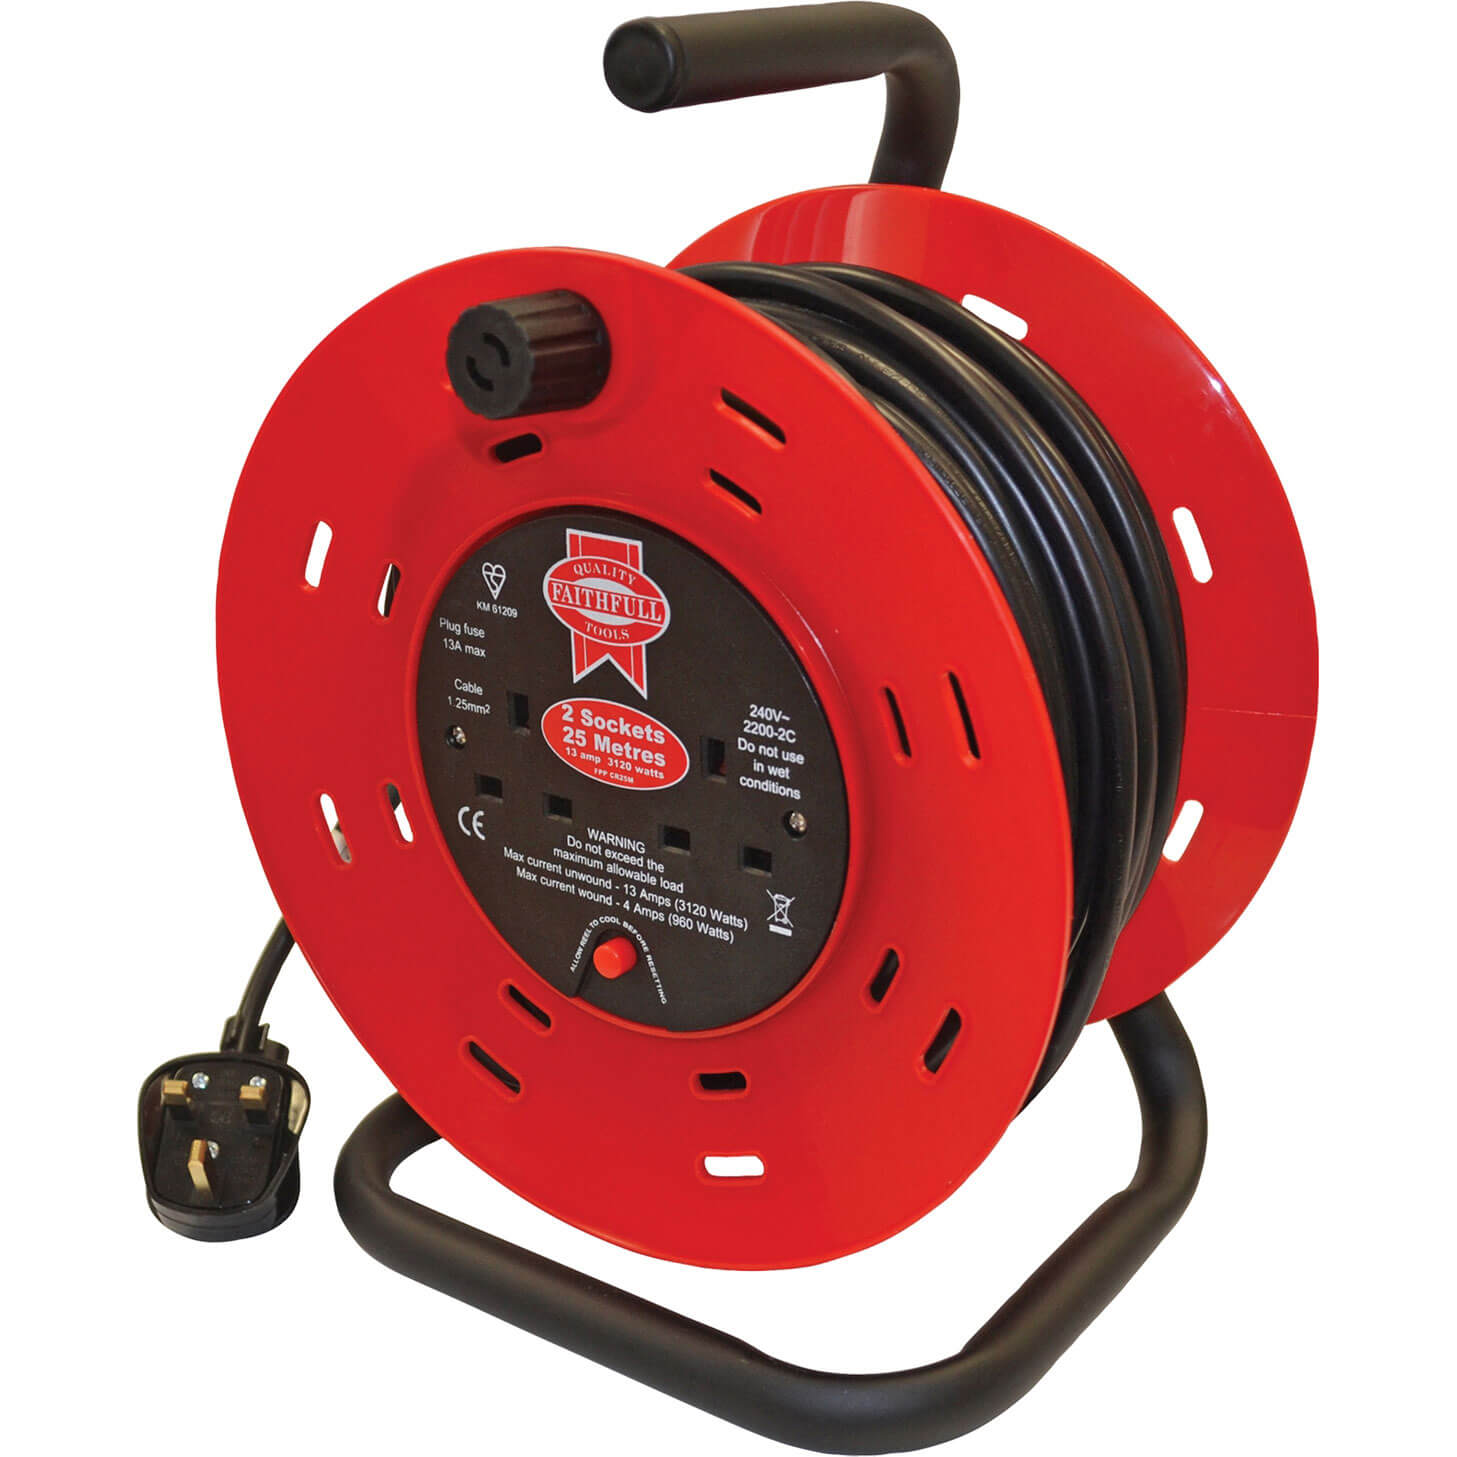 25m Heavy Duty Cable Extension Reel 13amp 240v